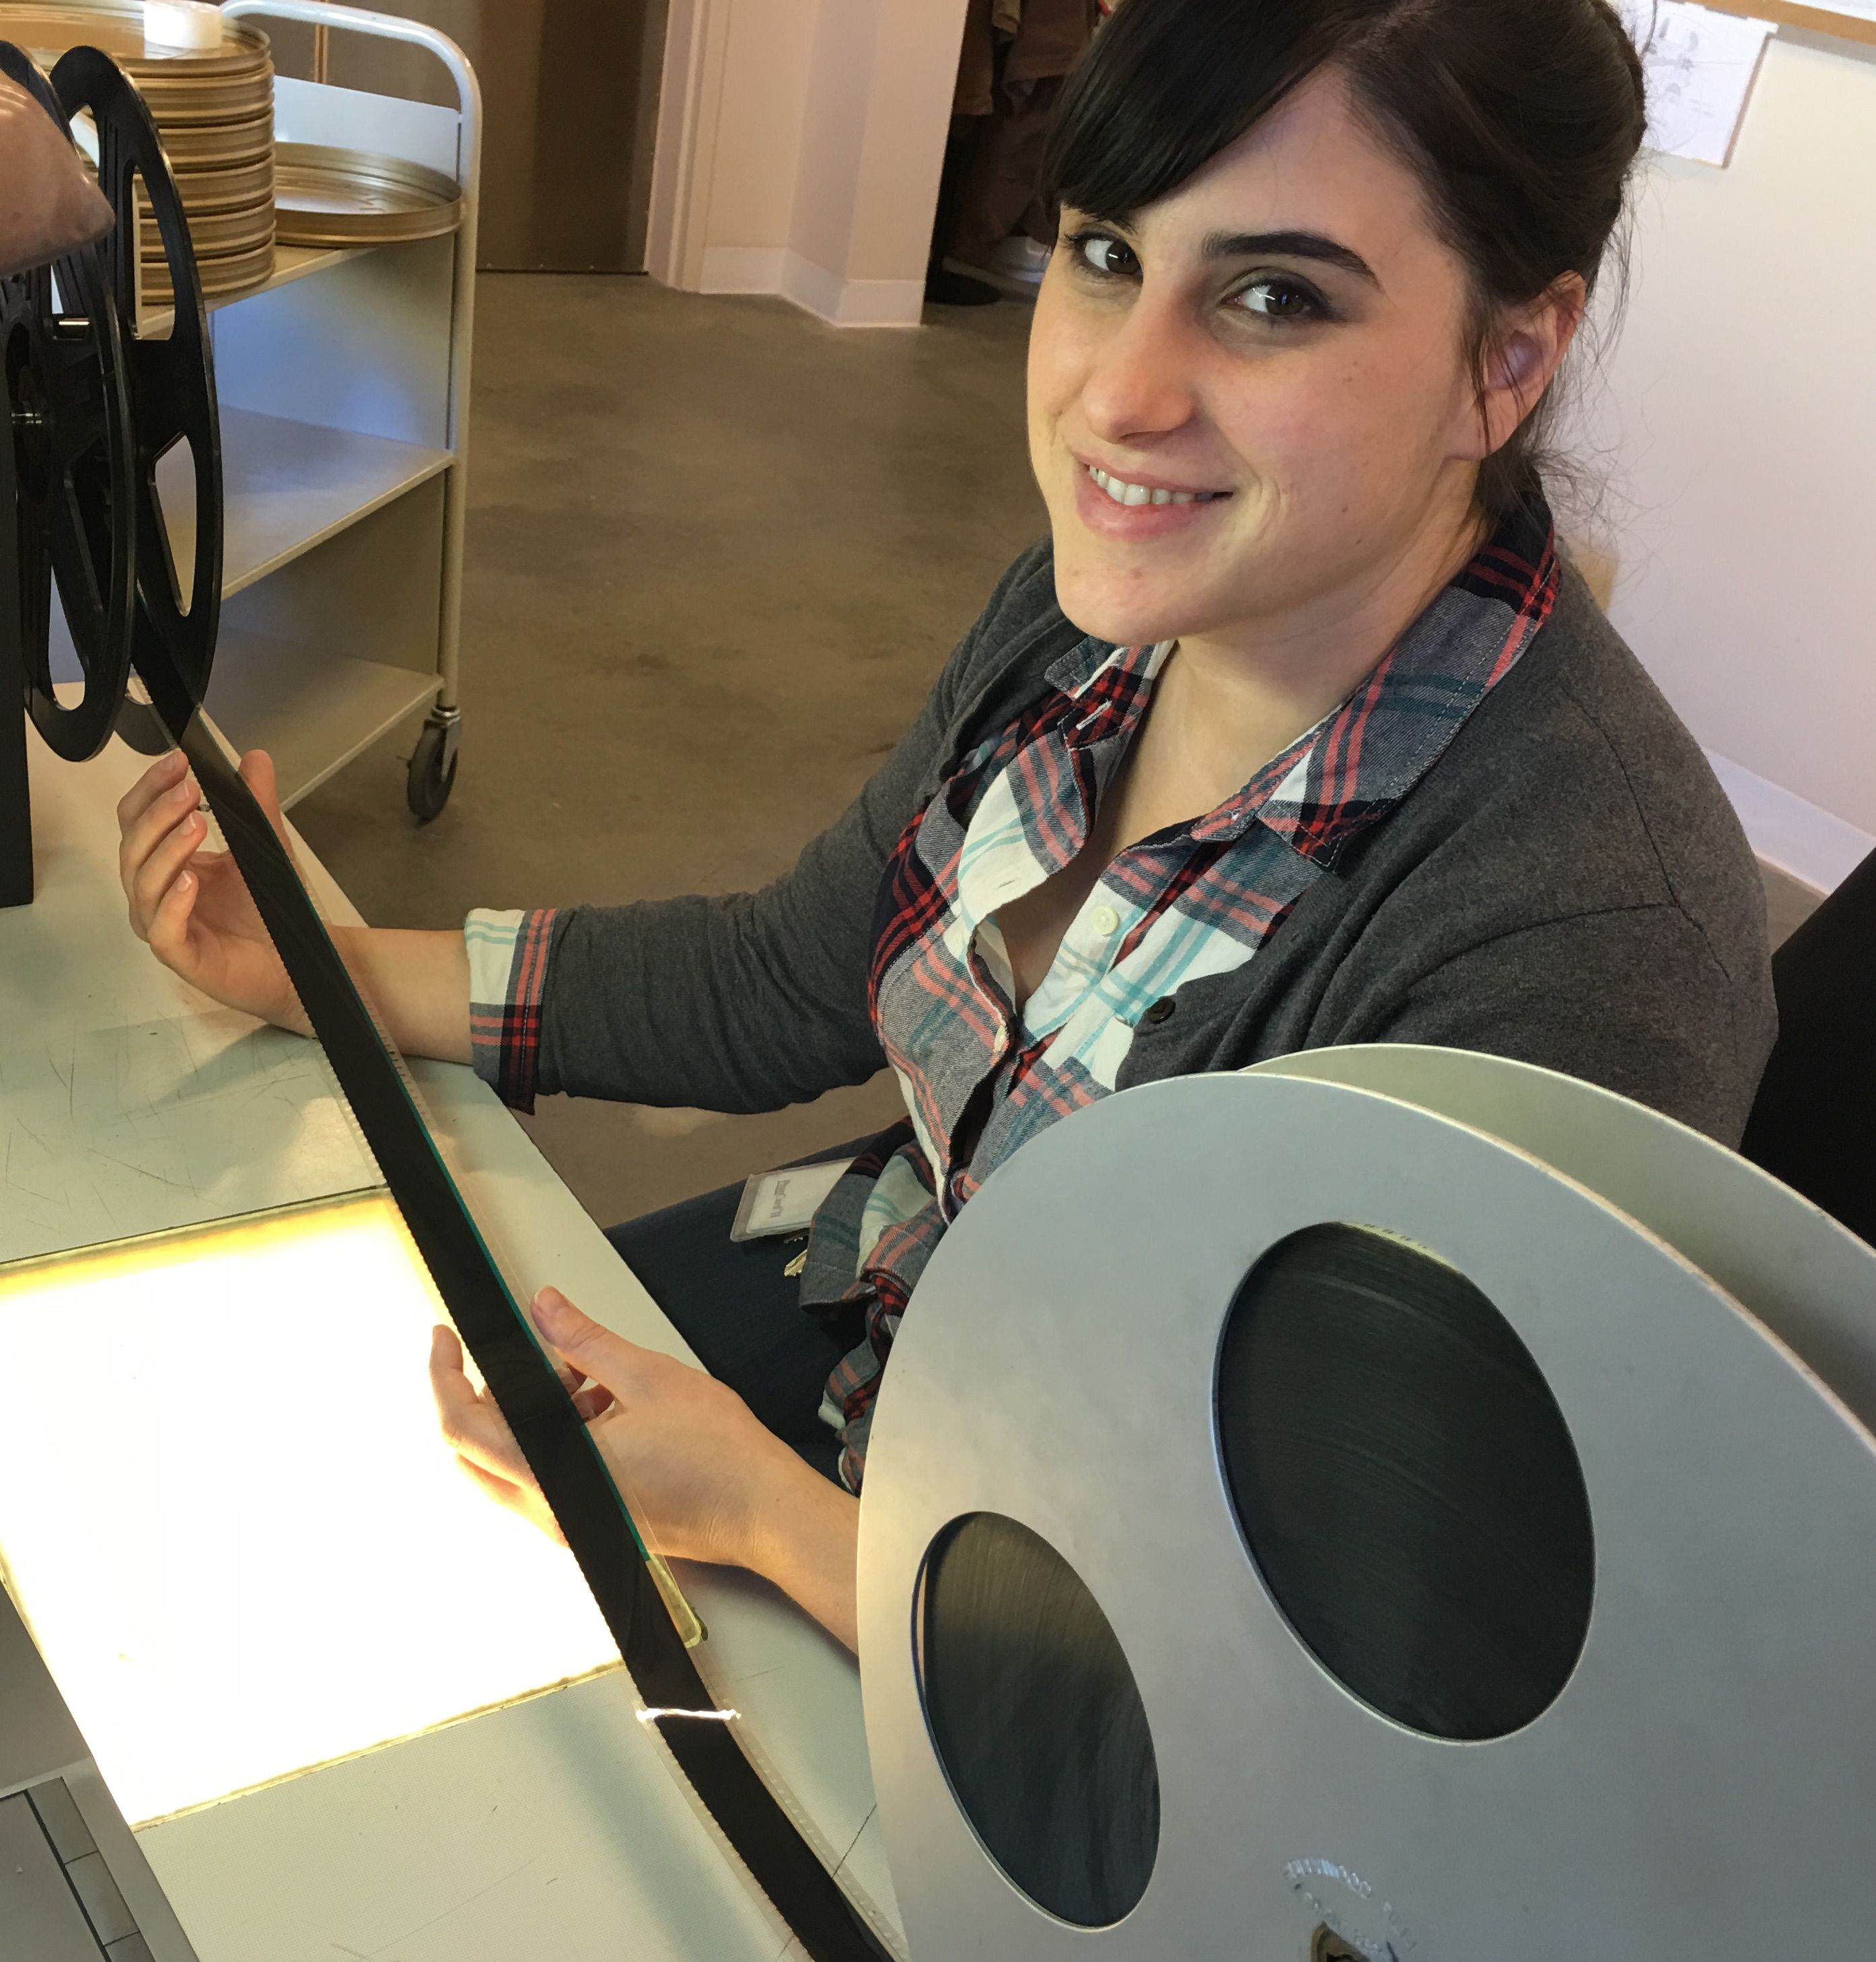 Staci Hogsett examines film reels over a lighted table at the UCLA Film and Television Archive